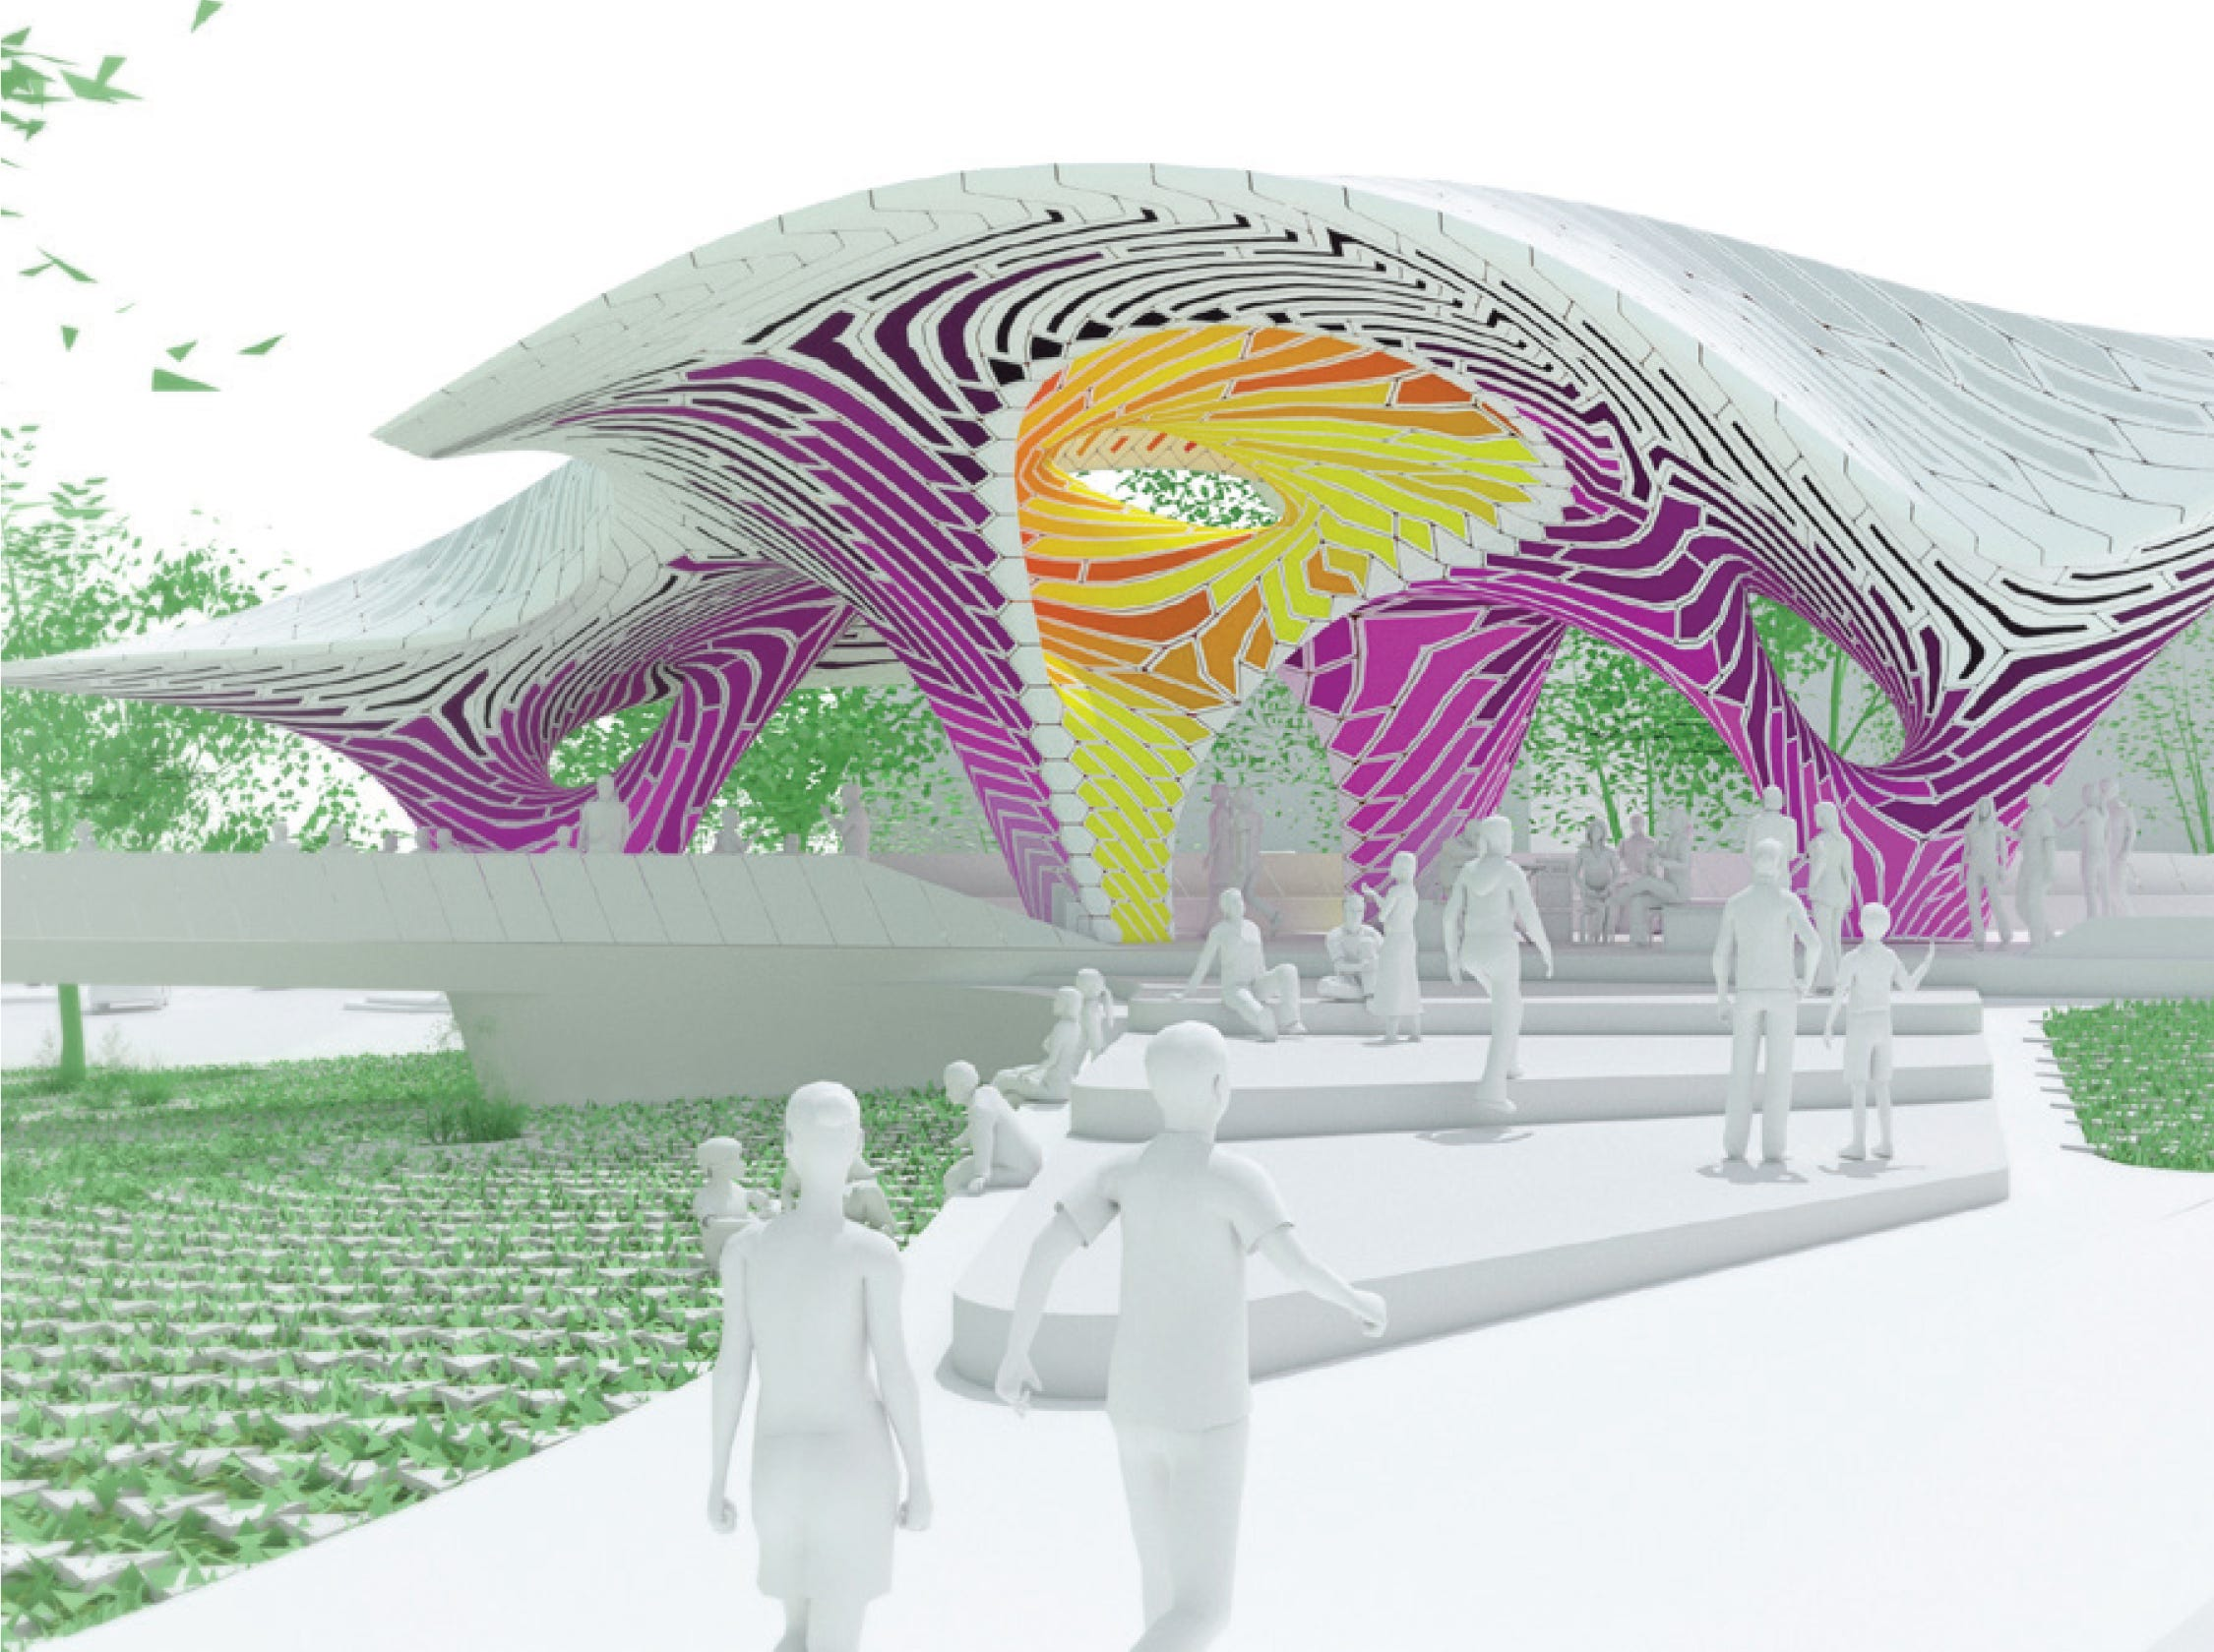 'Pier 865,' a sculpture created from stamped aluminum sheets by the Brooklyn, N.Y. firm THEVERYMANY, is being considered for what's now called the Cradle of Country Music Park in downtown Knoxville at the Summit Hill Drive-Gay Street intersection. While the drawing shows pinks and purples, the stamped aluminum palette would be green, light green, yellow and white.